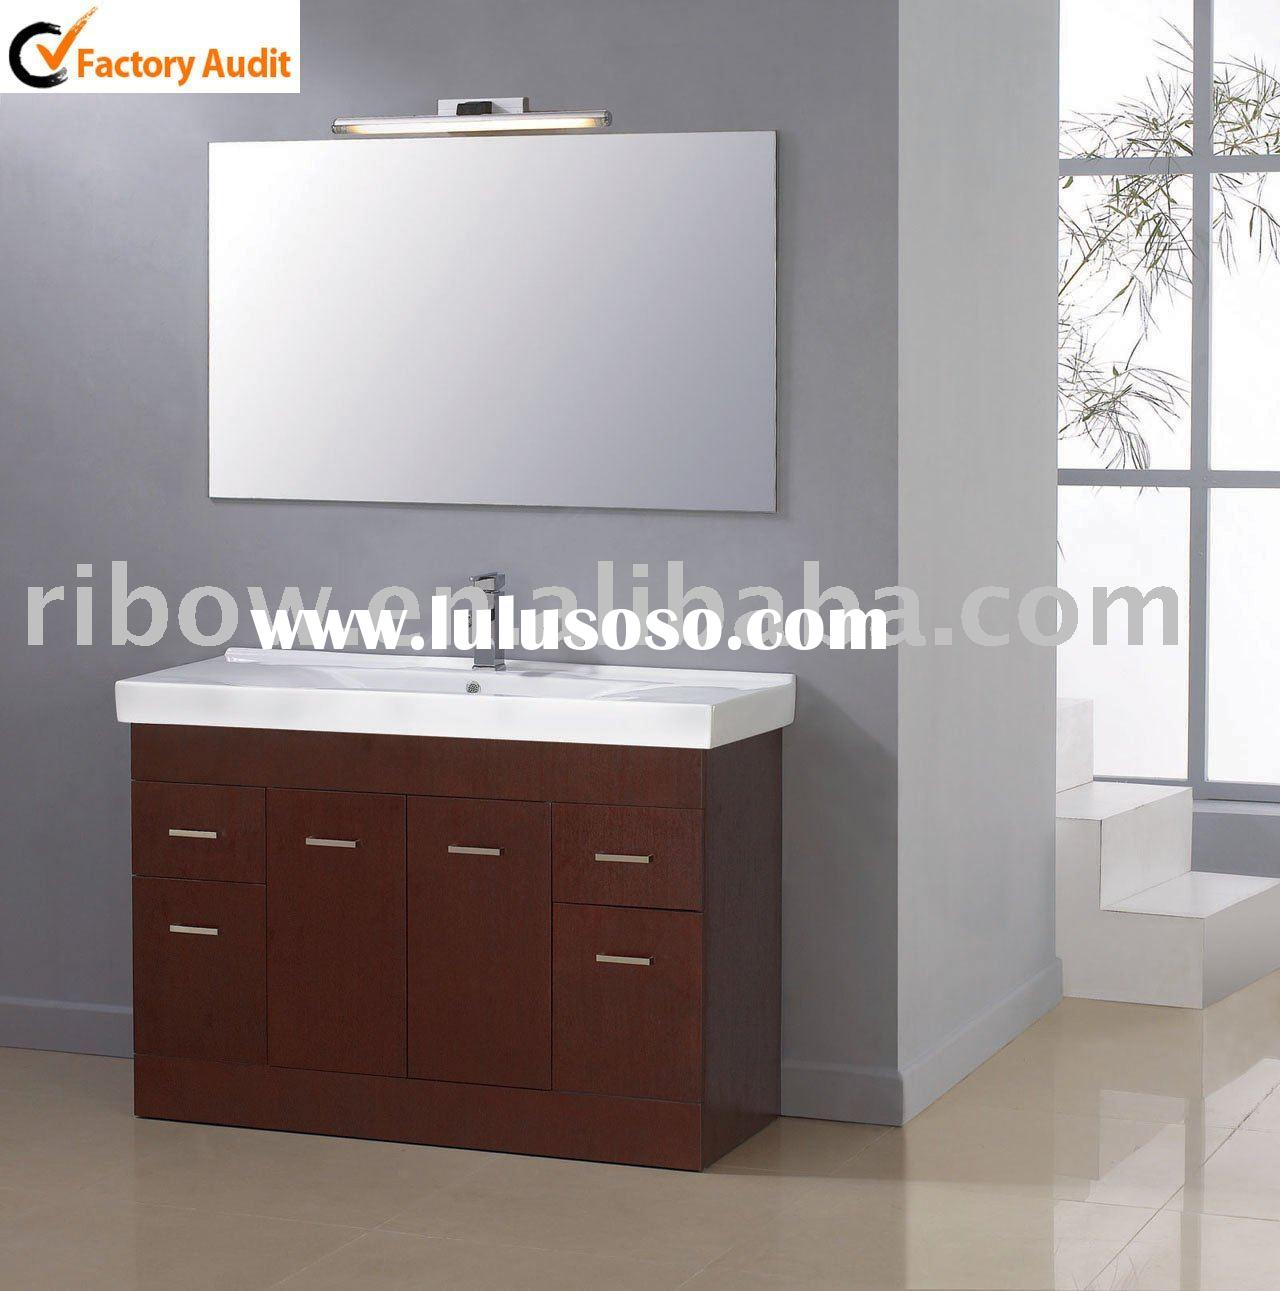 Bathroom Storage Cabinet Modern Bathroom Cheap Bathroom Cabinets For Sale Price China